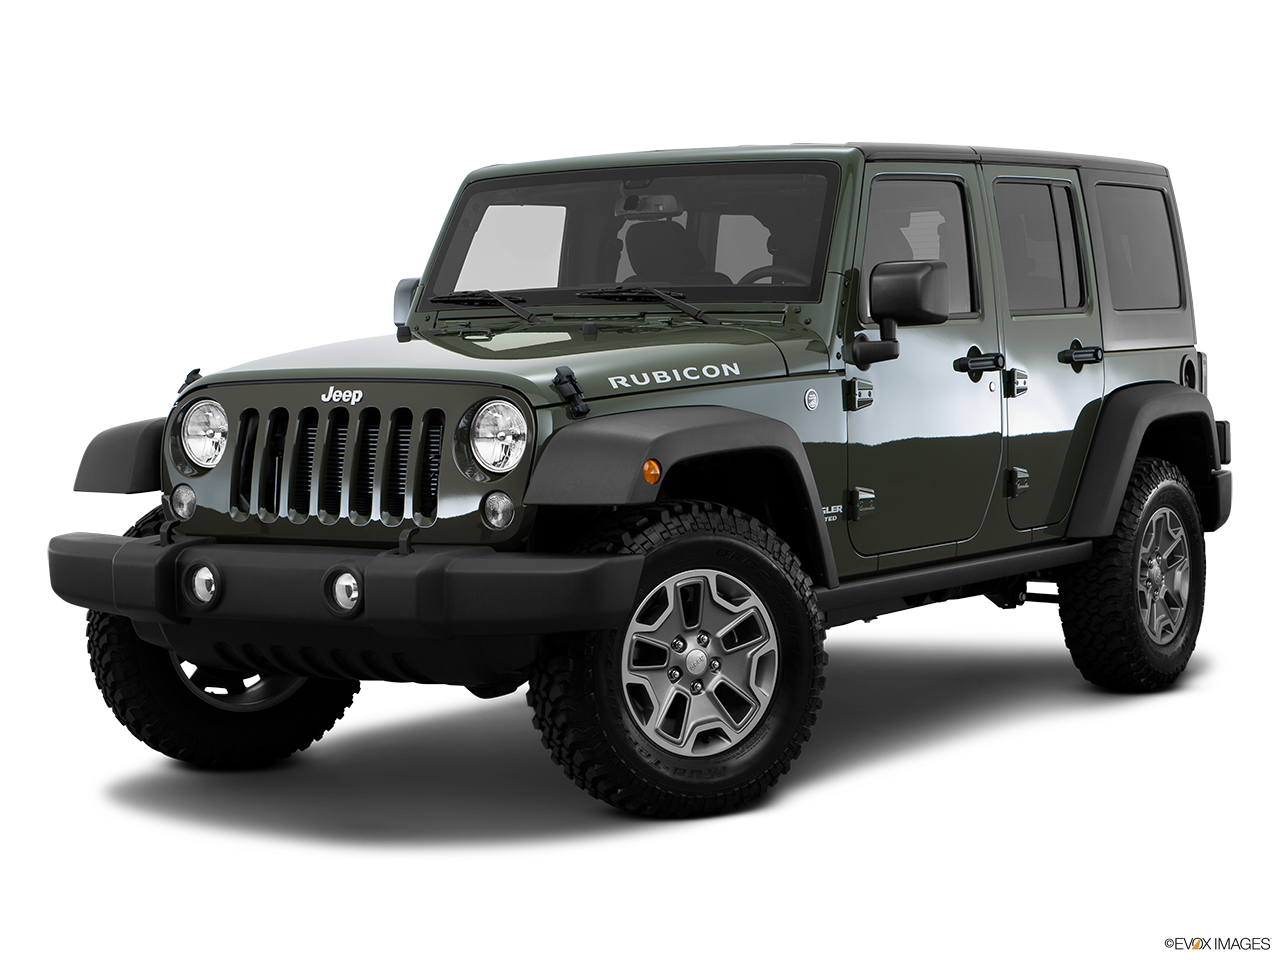 Test Drive A 2016 Jeep Wrangler Unlimited at Nashville Chrysler Dodge Jeep RAM in Antioch